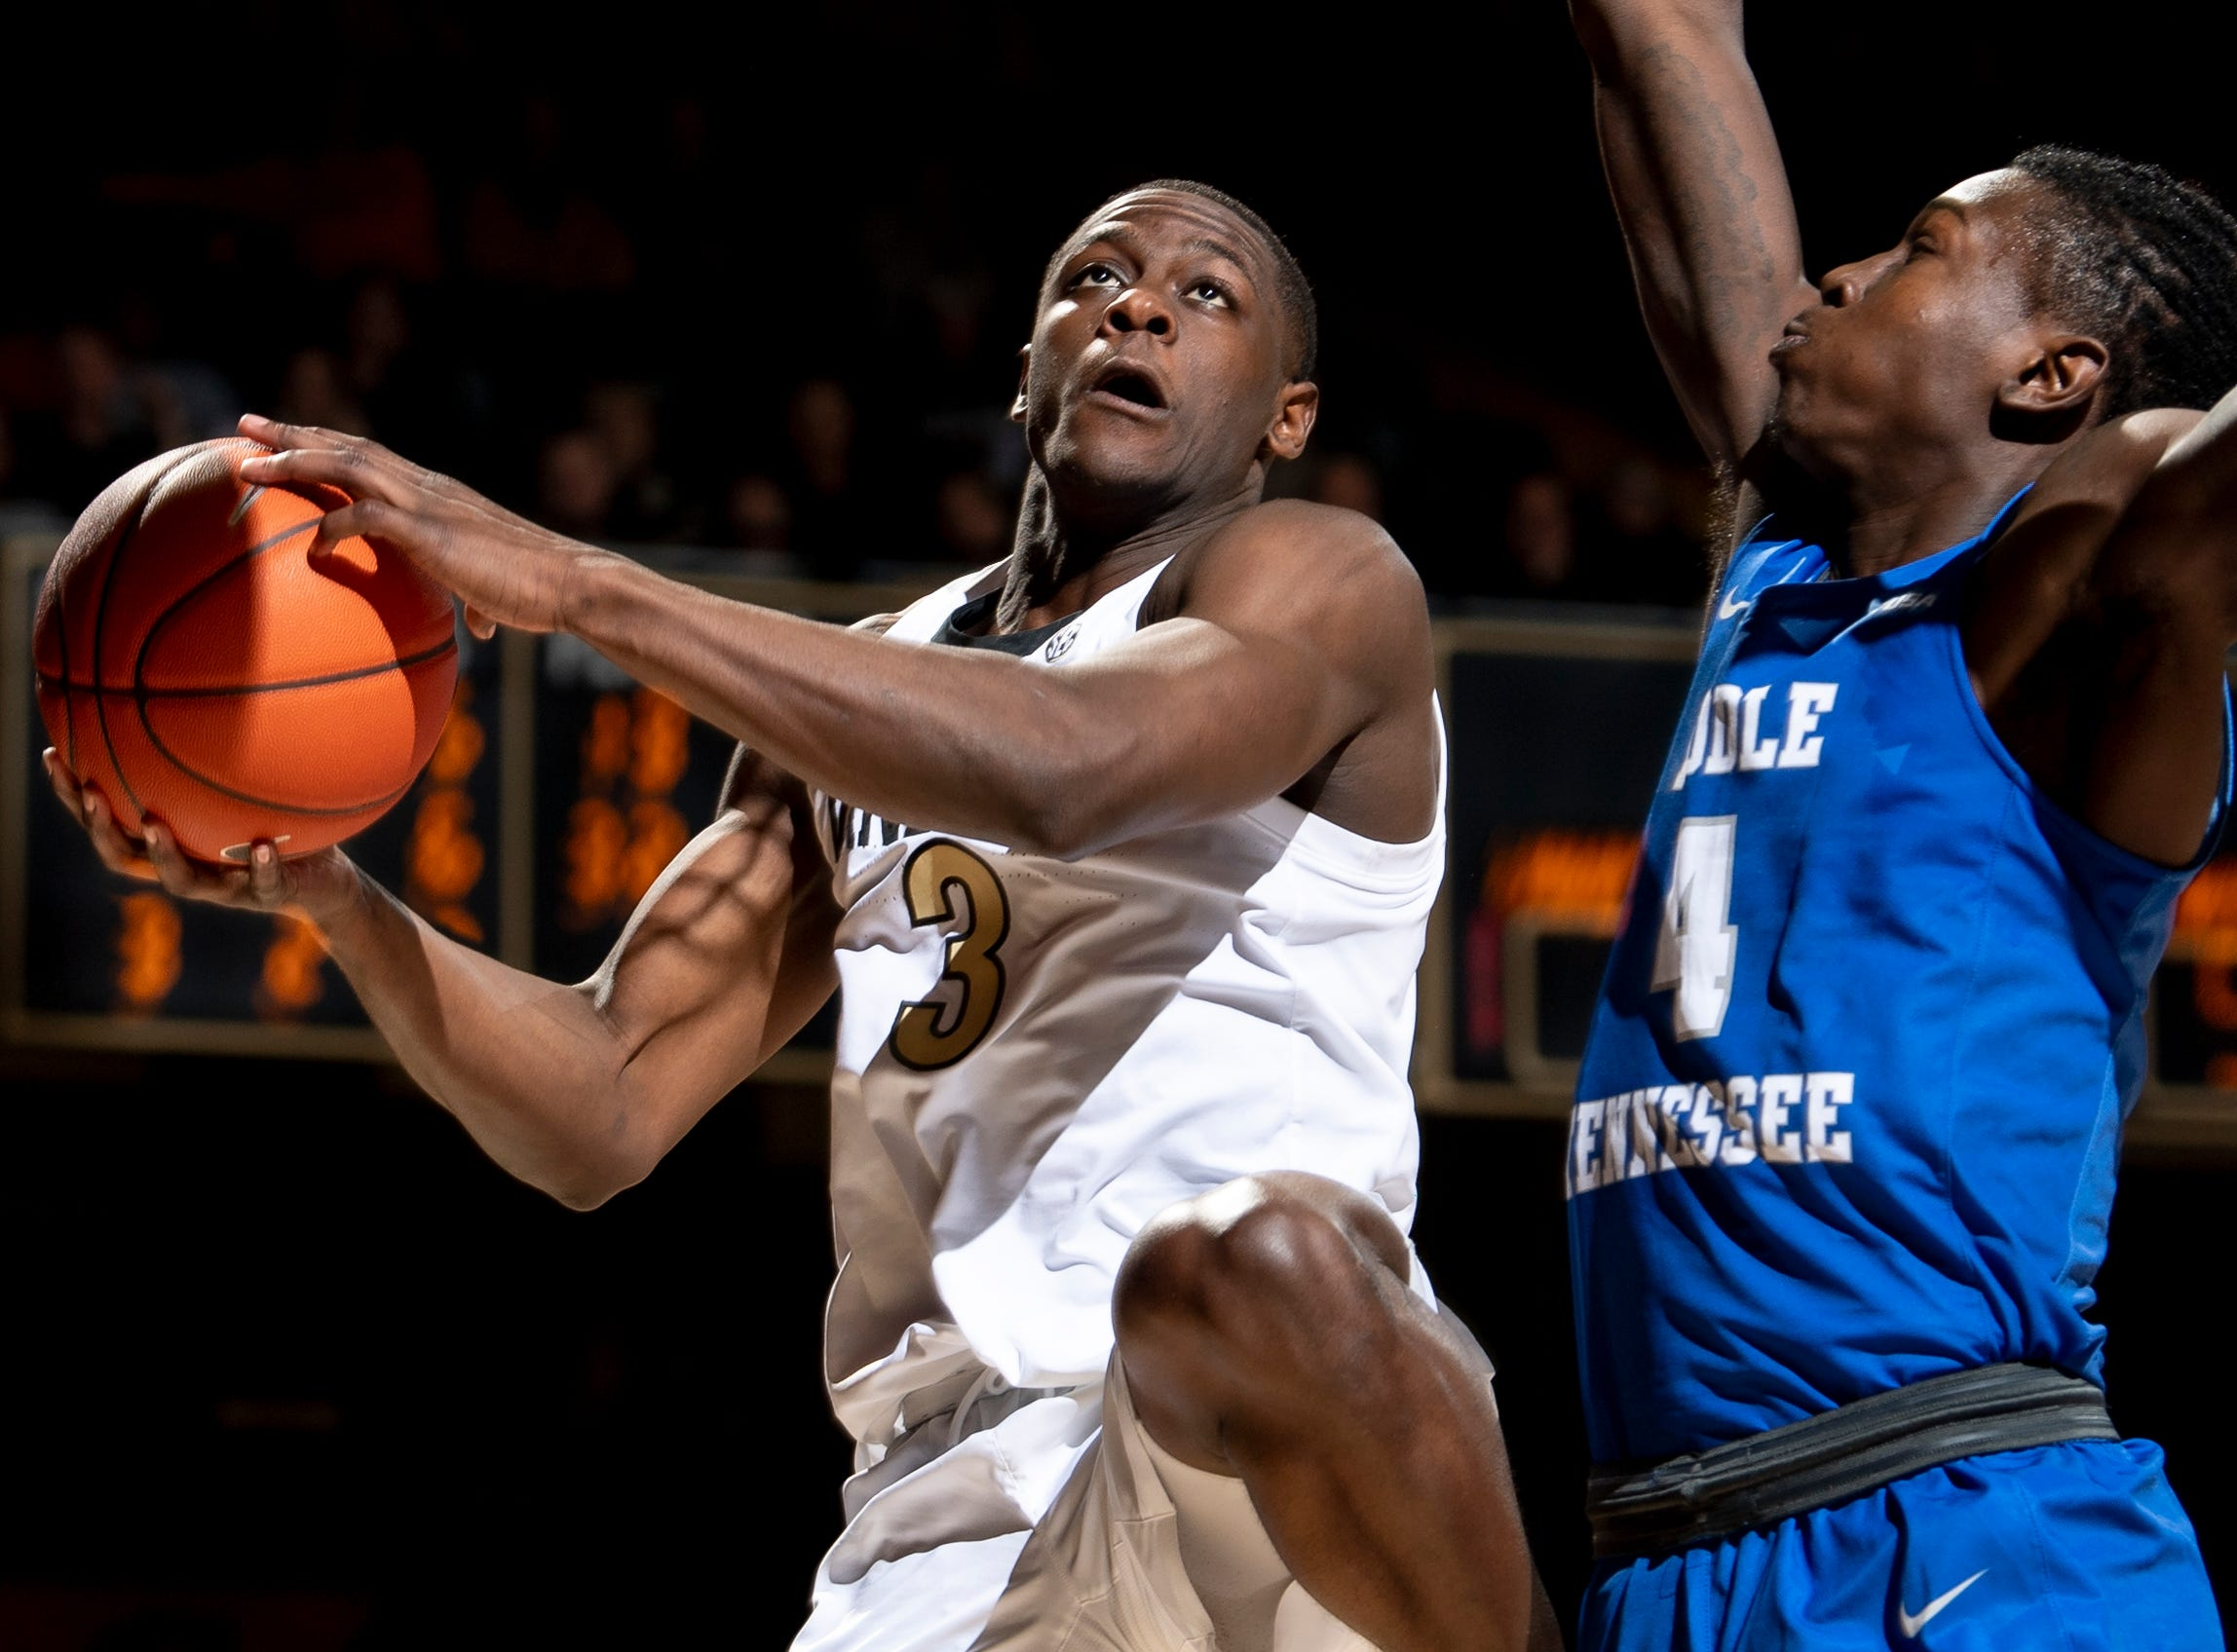 Vanderbilt guard Maxwell Evans (3) shoots past MTSU forward James Hawthorne (4) during the second half at Memorial Gym in Nashville, Tenn., Wednesday, Dec. 5, 2018.